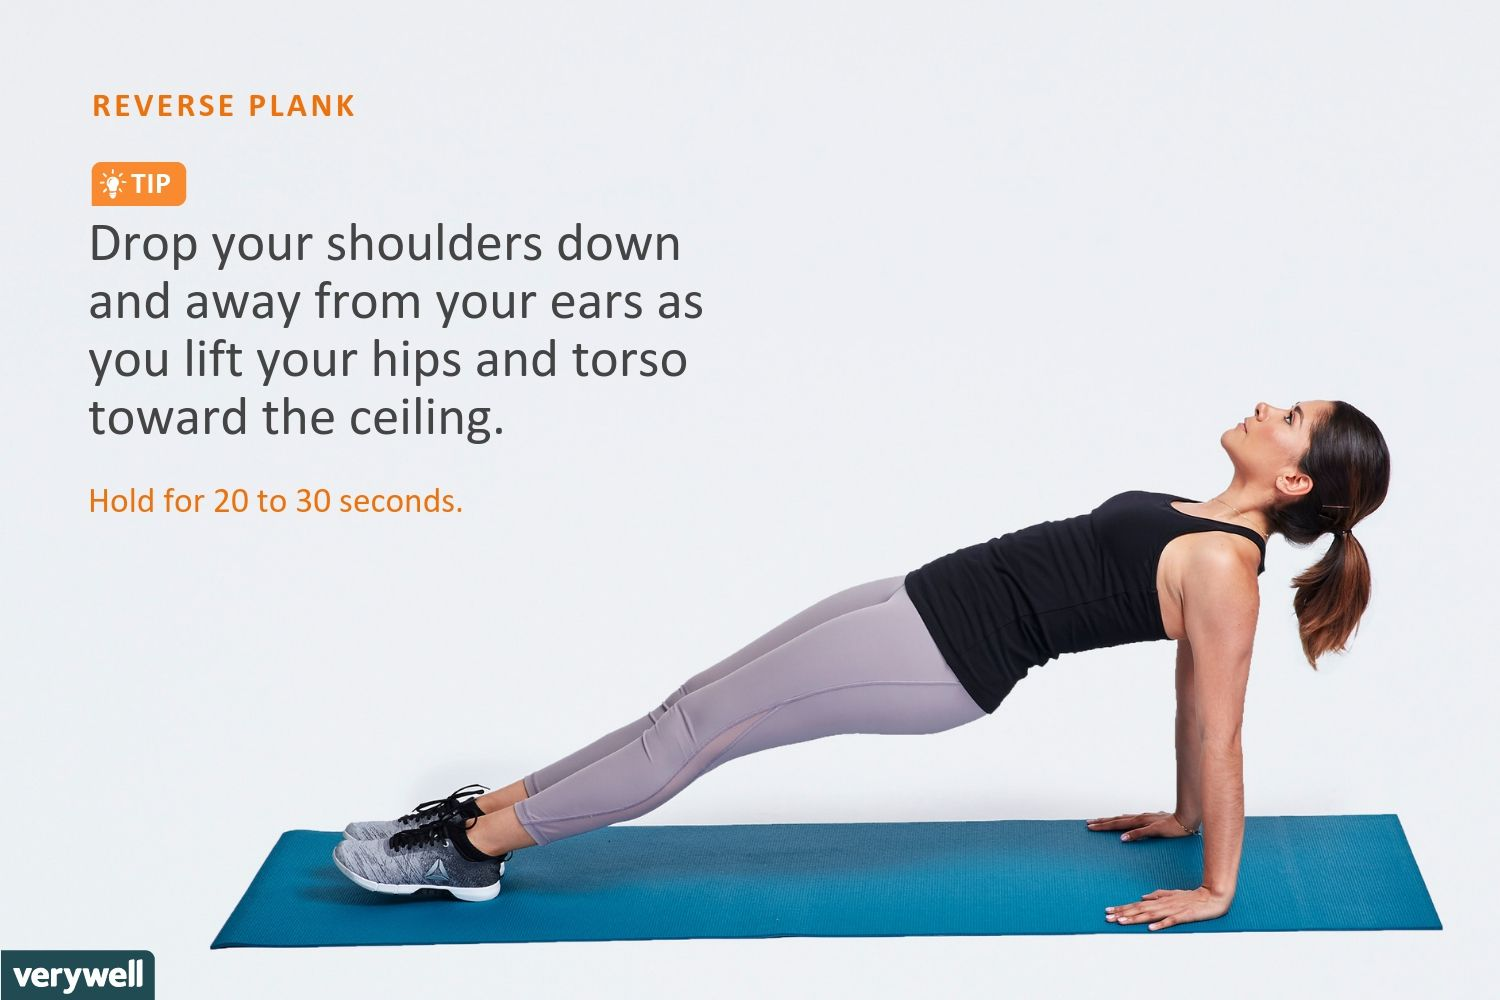 Reverse Plank Exercise for Your Core